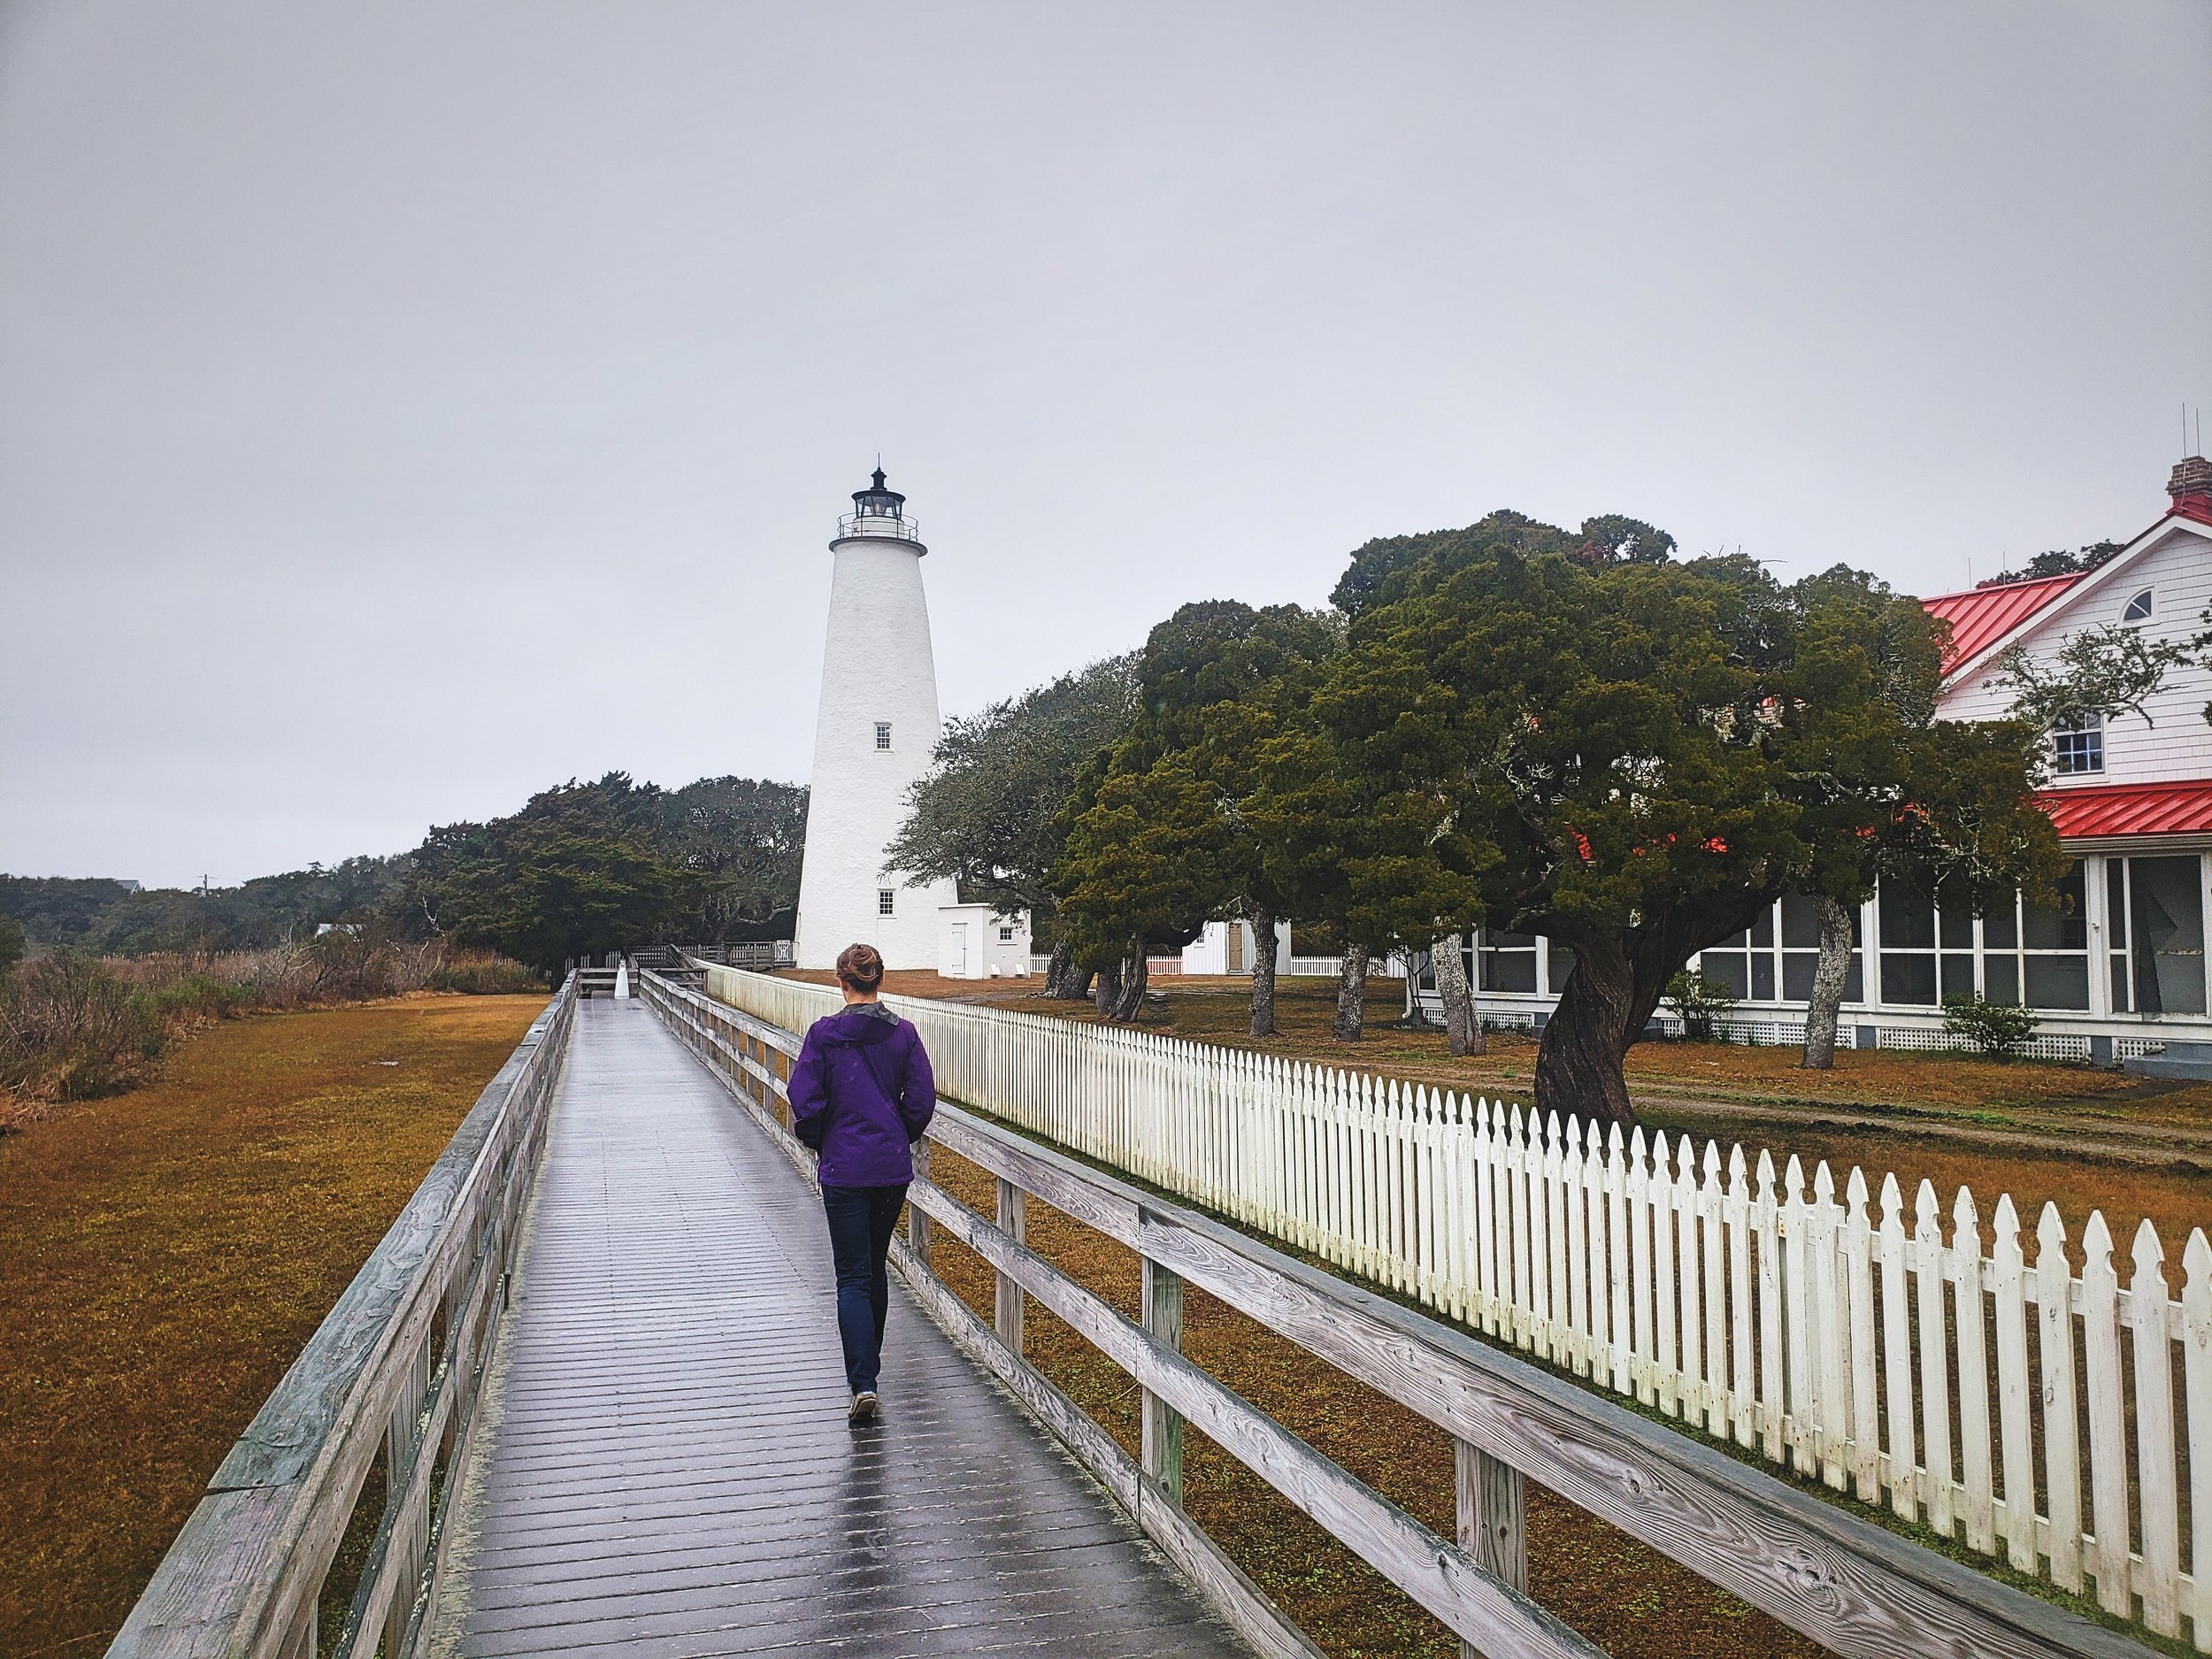 Visiting the very quaint Ocracoke Lighthouse while visiting Ocracoke Island in February.